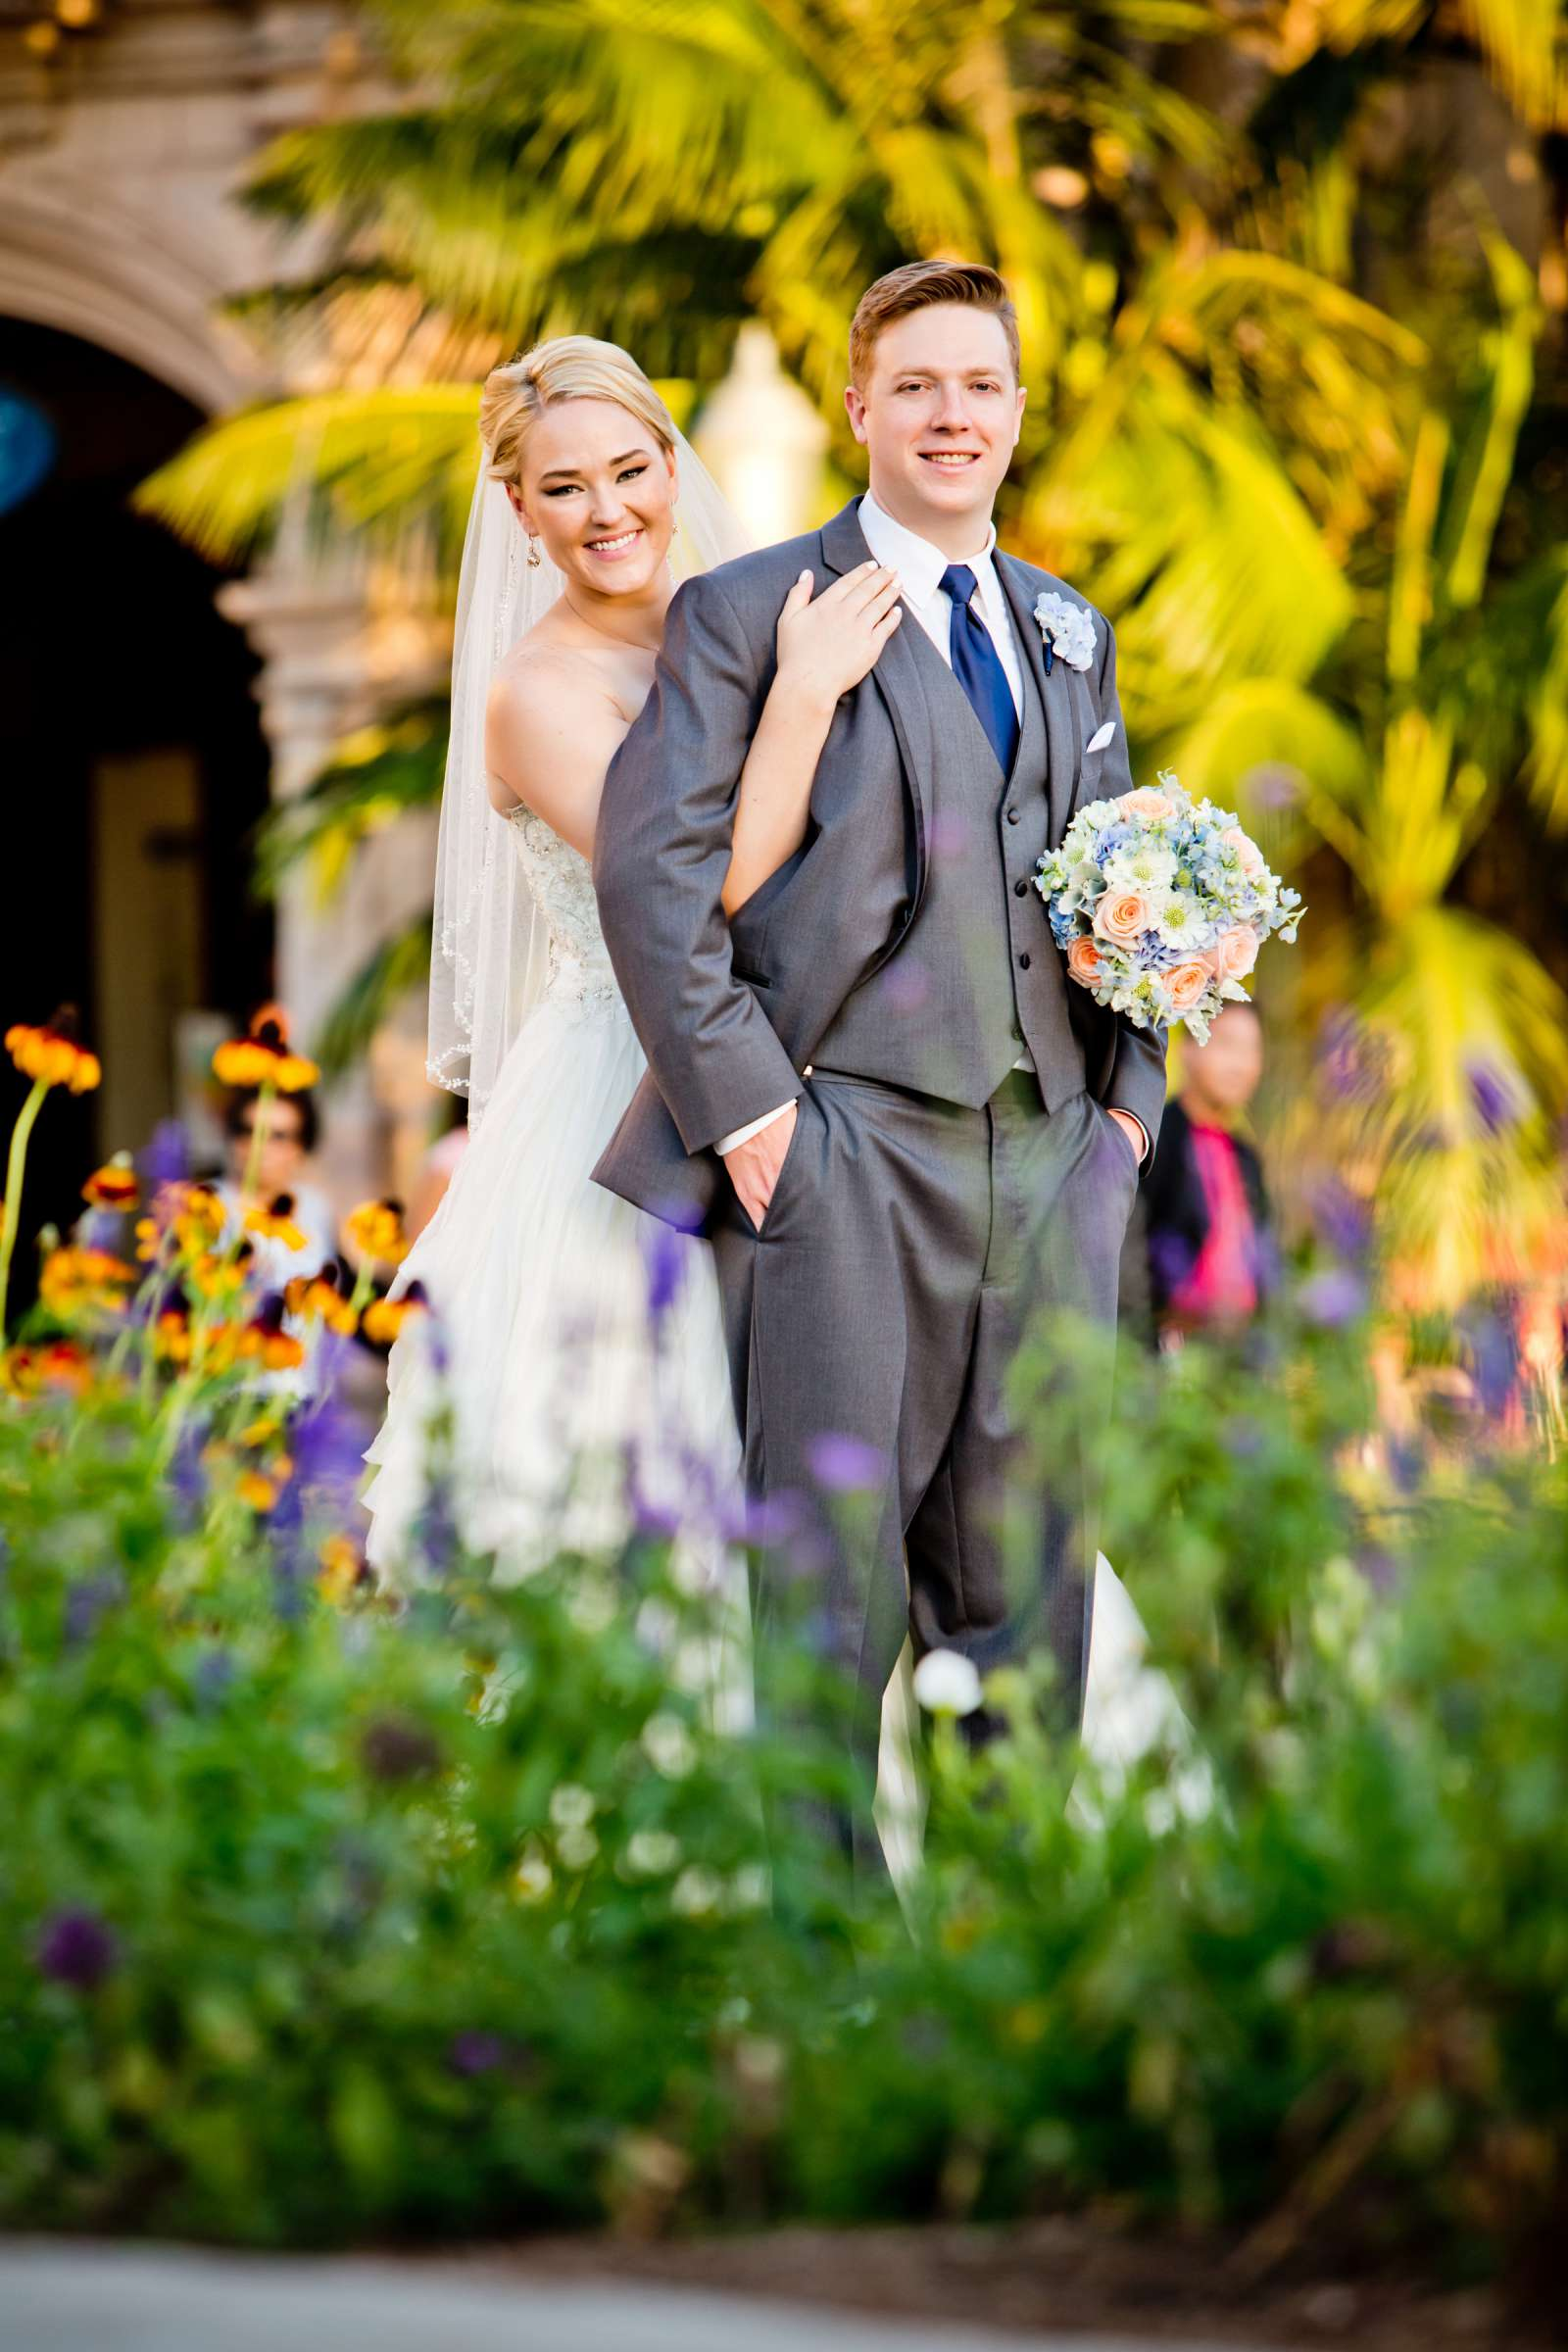 The Prado Wedding coordinated by Sublime Weddings, Ashley and Andrew Wedding Photo #2 by True Photography